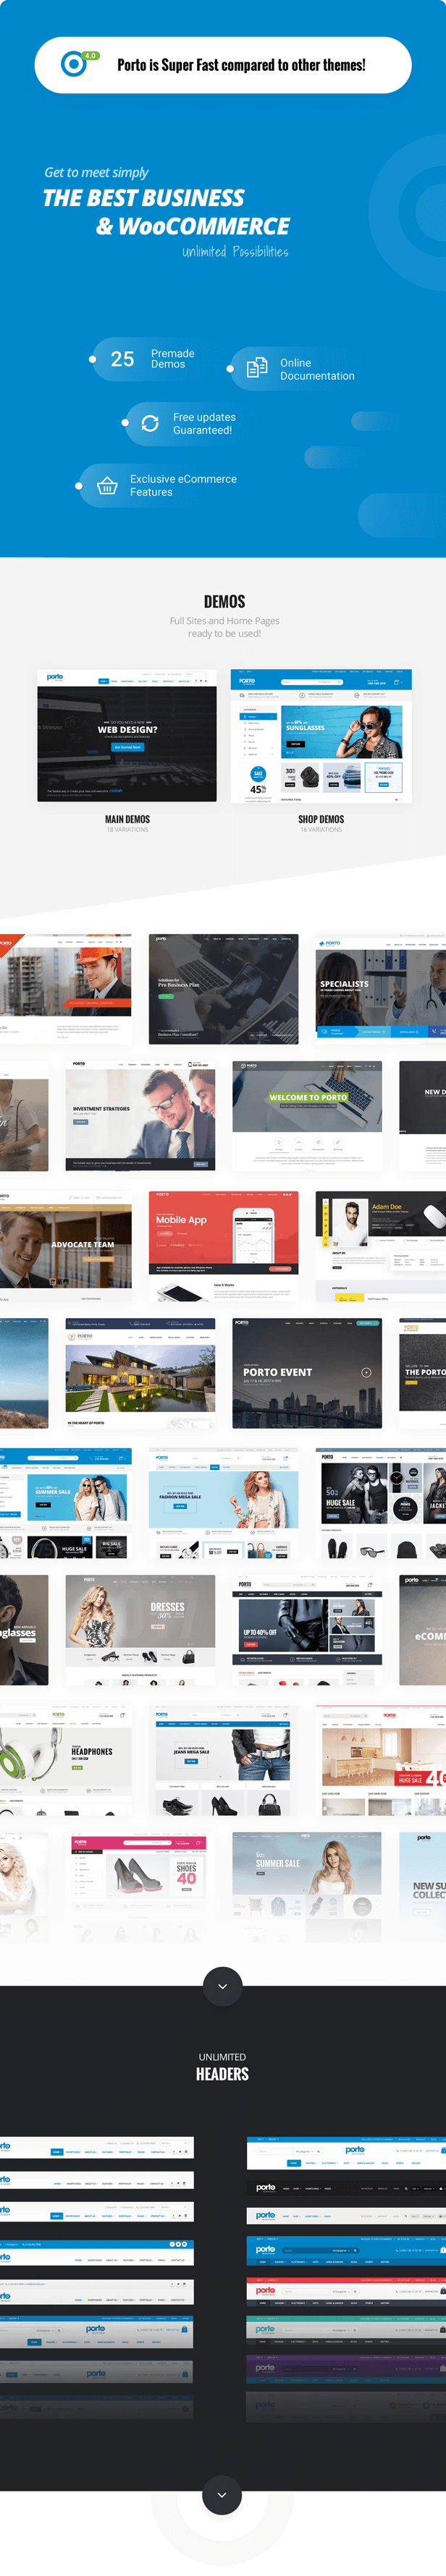 Porto2 - Porto Responsive WordPress eCommerce Theme